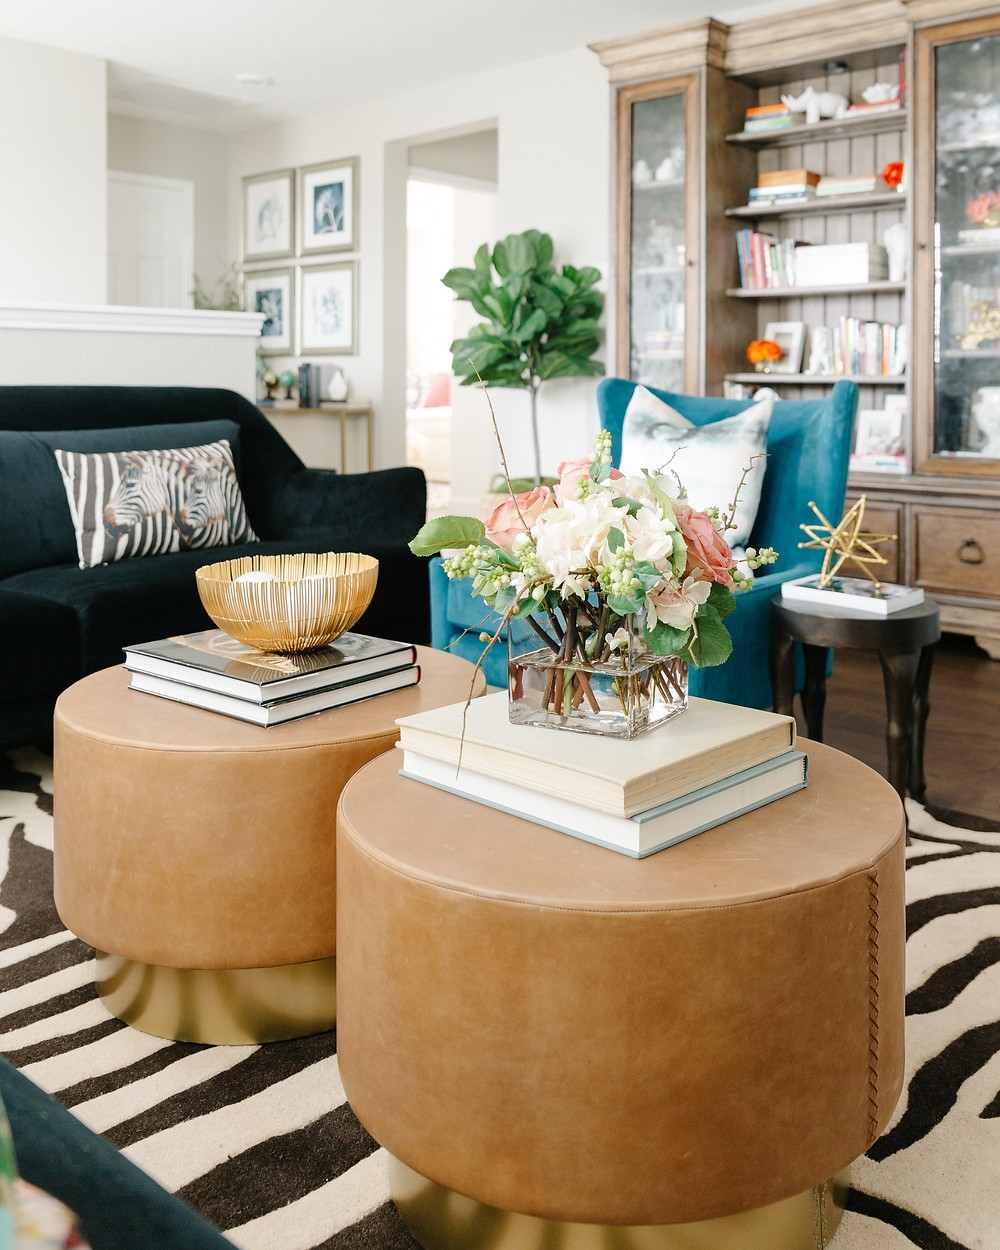 TV lounge with upholstered leather nesting coffee tables